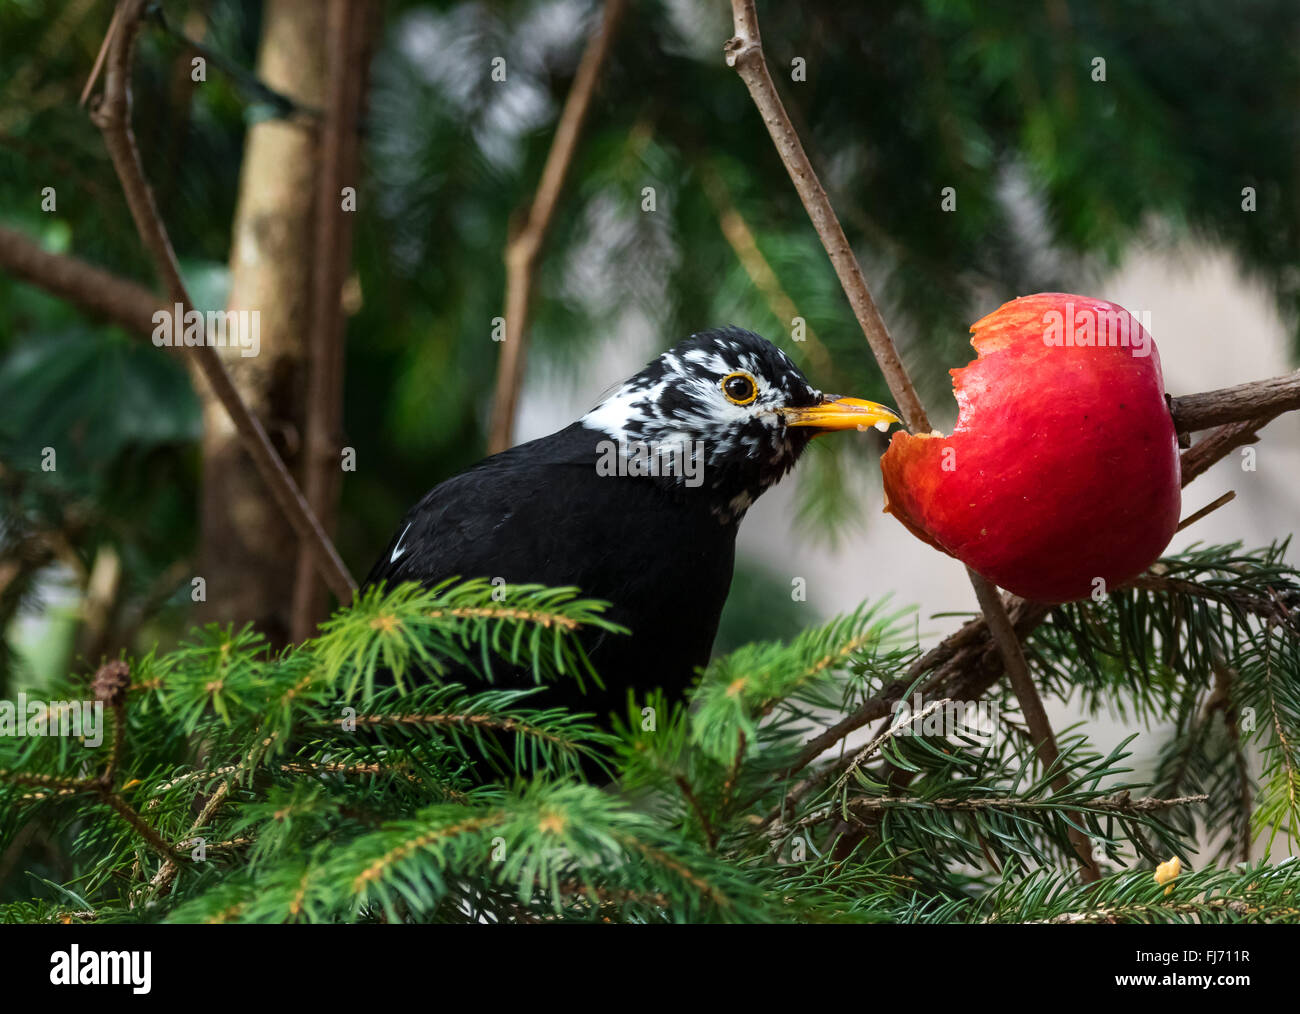 Blackbird (Turdus merula) with strange white feathers eating red apple, spotted in garden Austria, Tyrol. - Stock Image